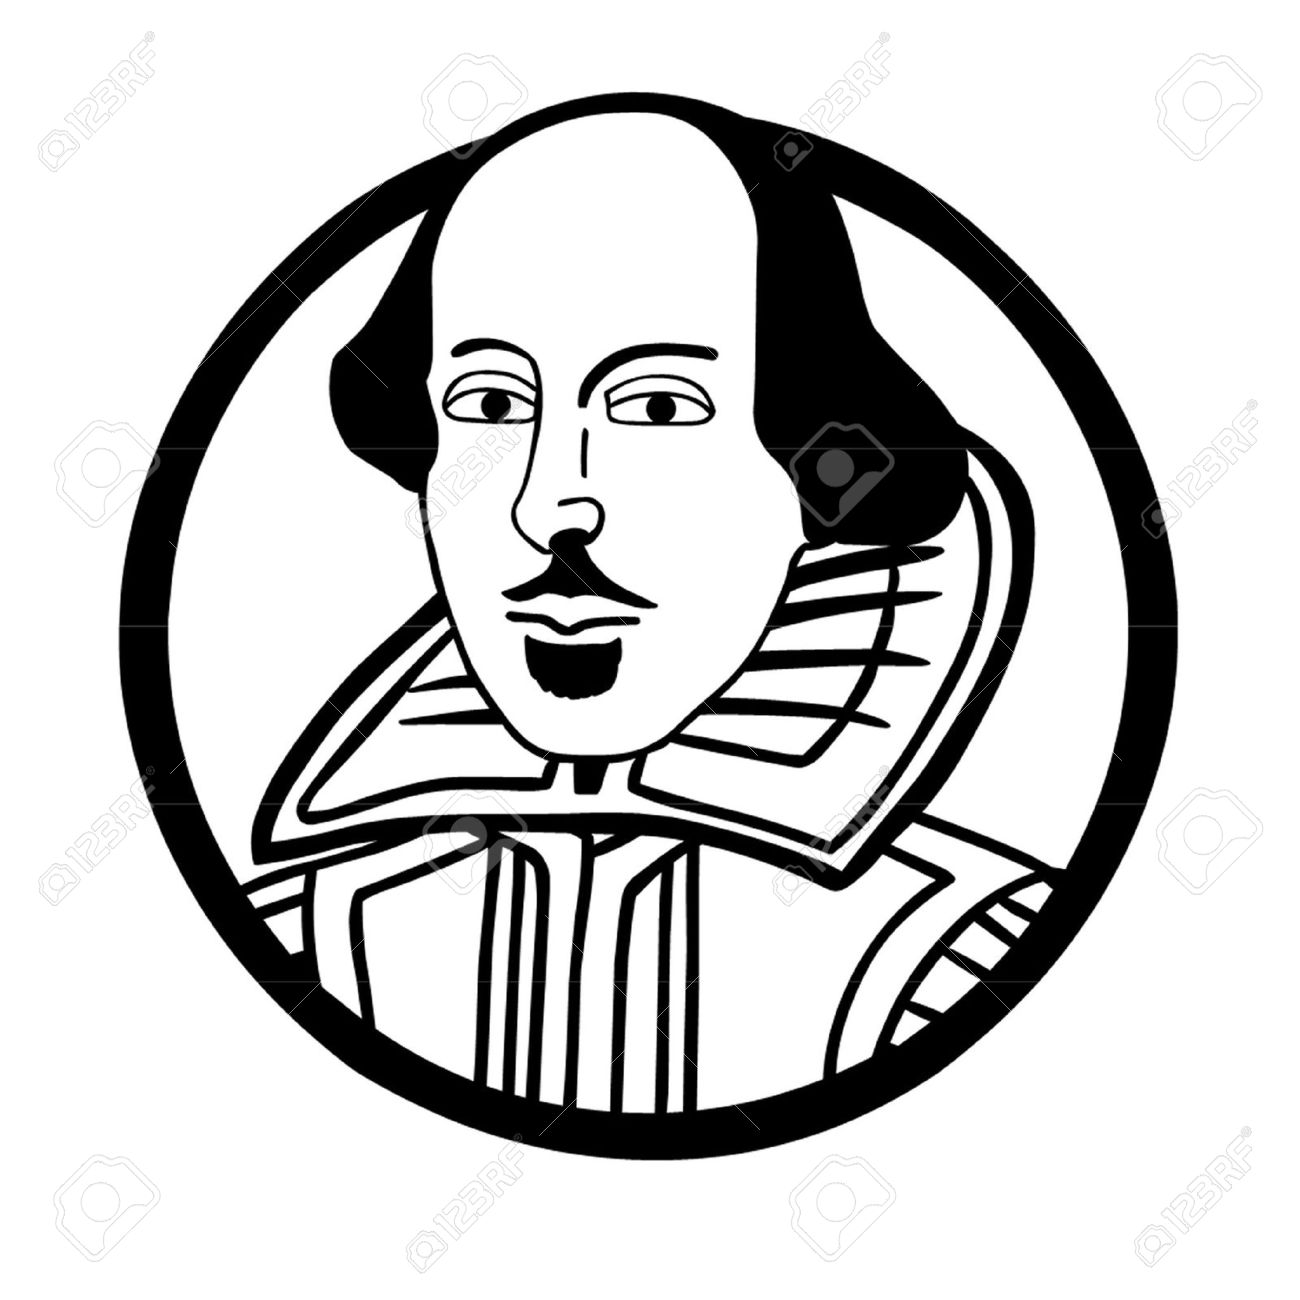 william shakespeare royalty free cliparts vectors and stock rh 123rf com shakespeare clipart free Shakespeare Drawing